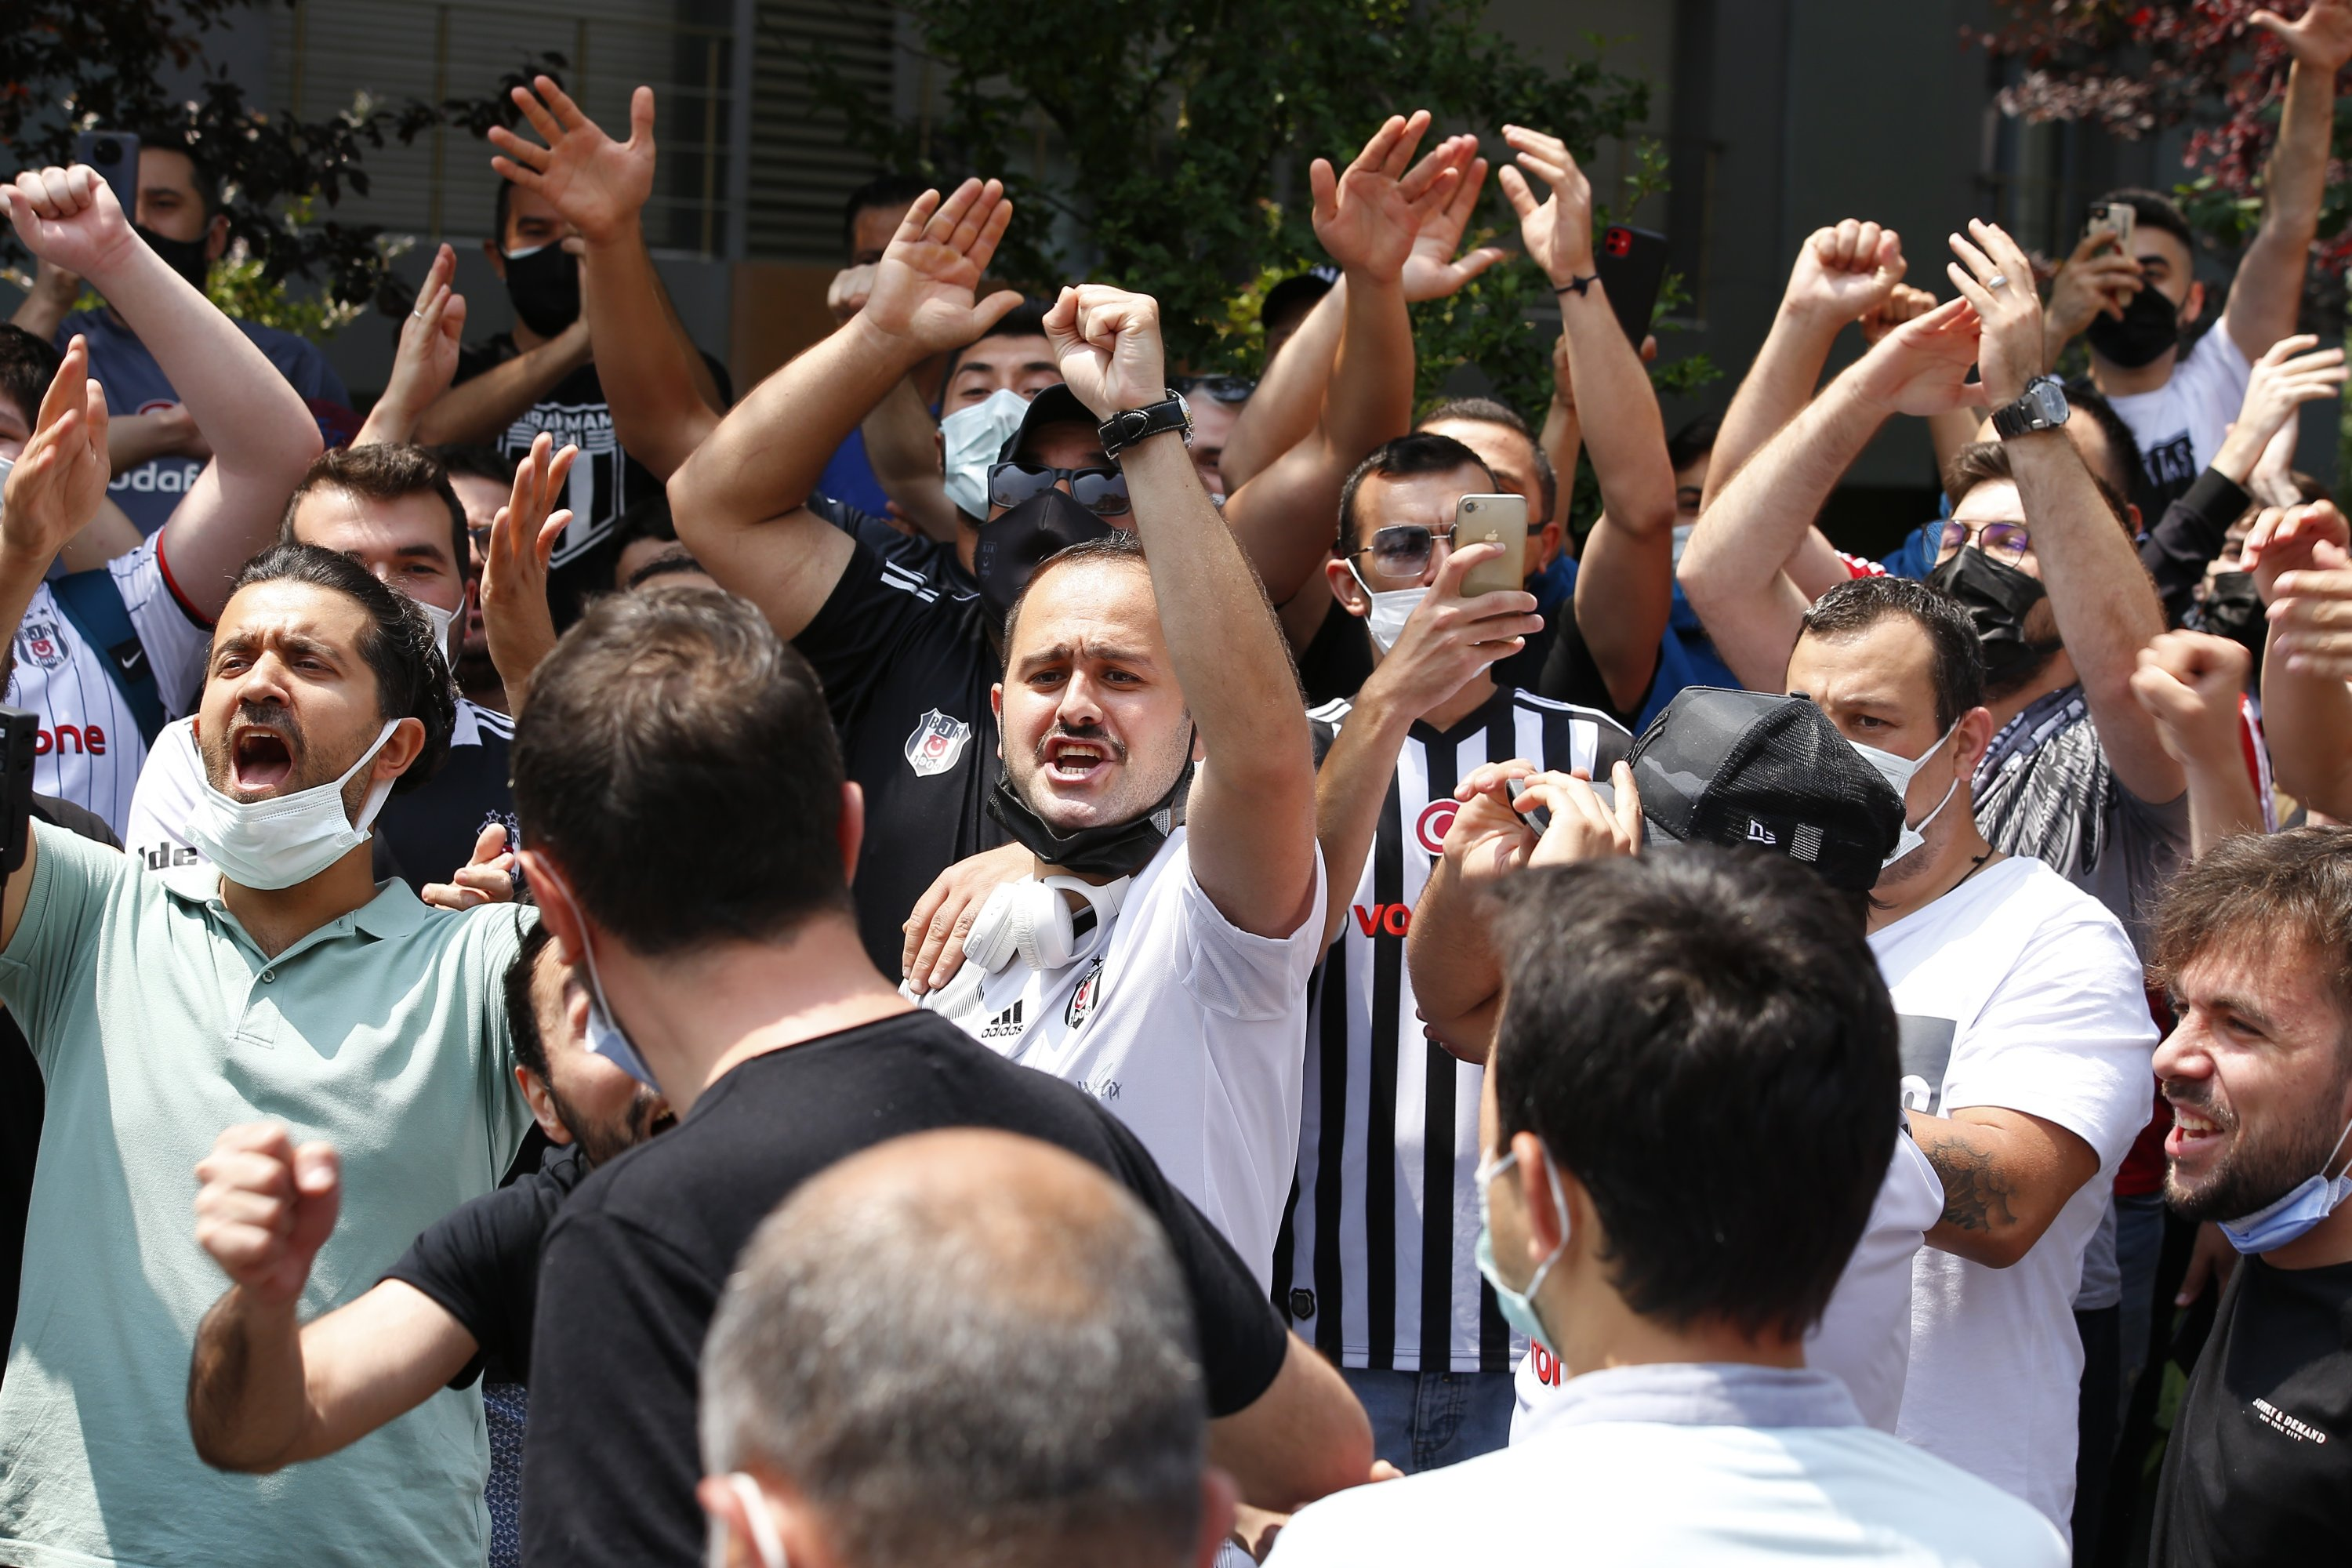 A group of Beşiktaş fans gathers in front of Sergen Yalçın's house to show their support and persuade him to stay at the club, June 22, 2021. (IHA Photo)